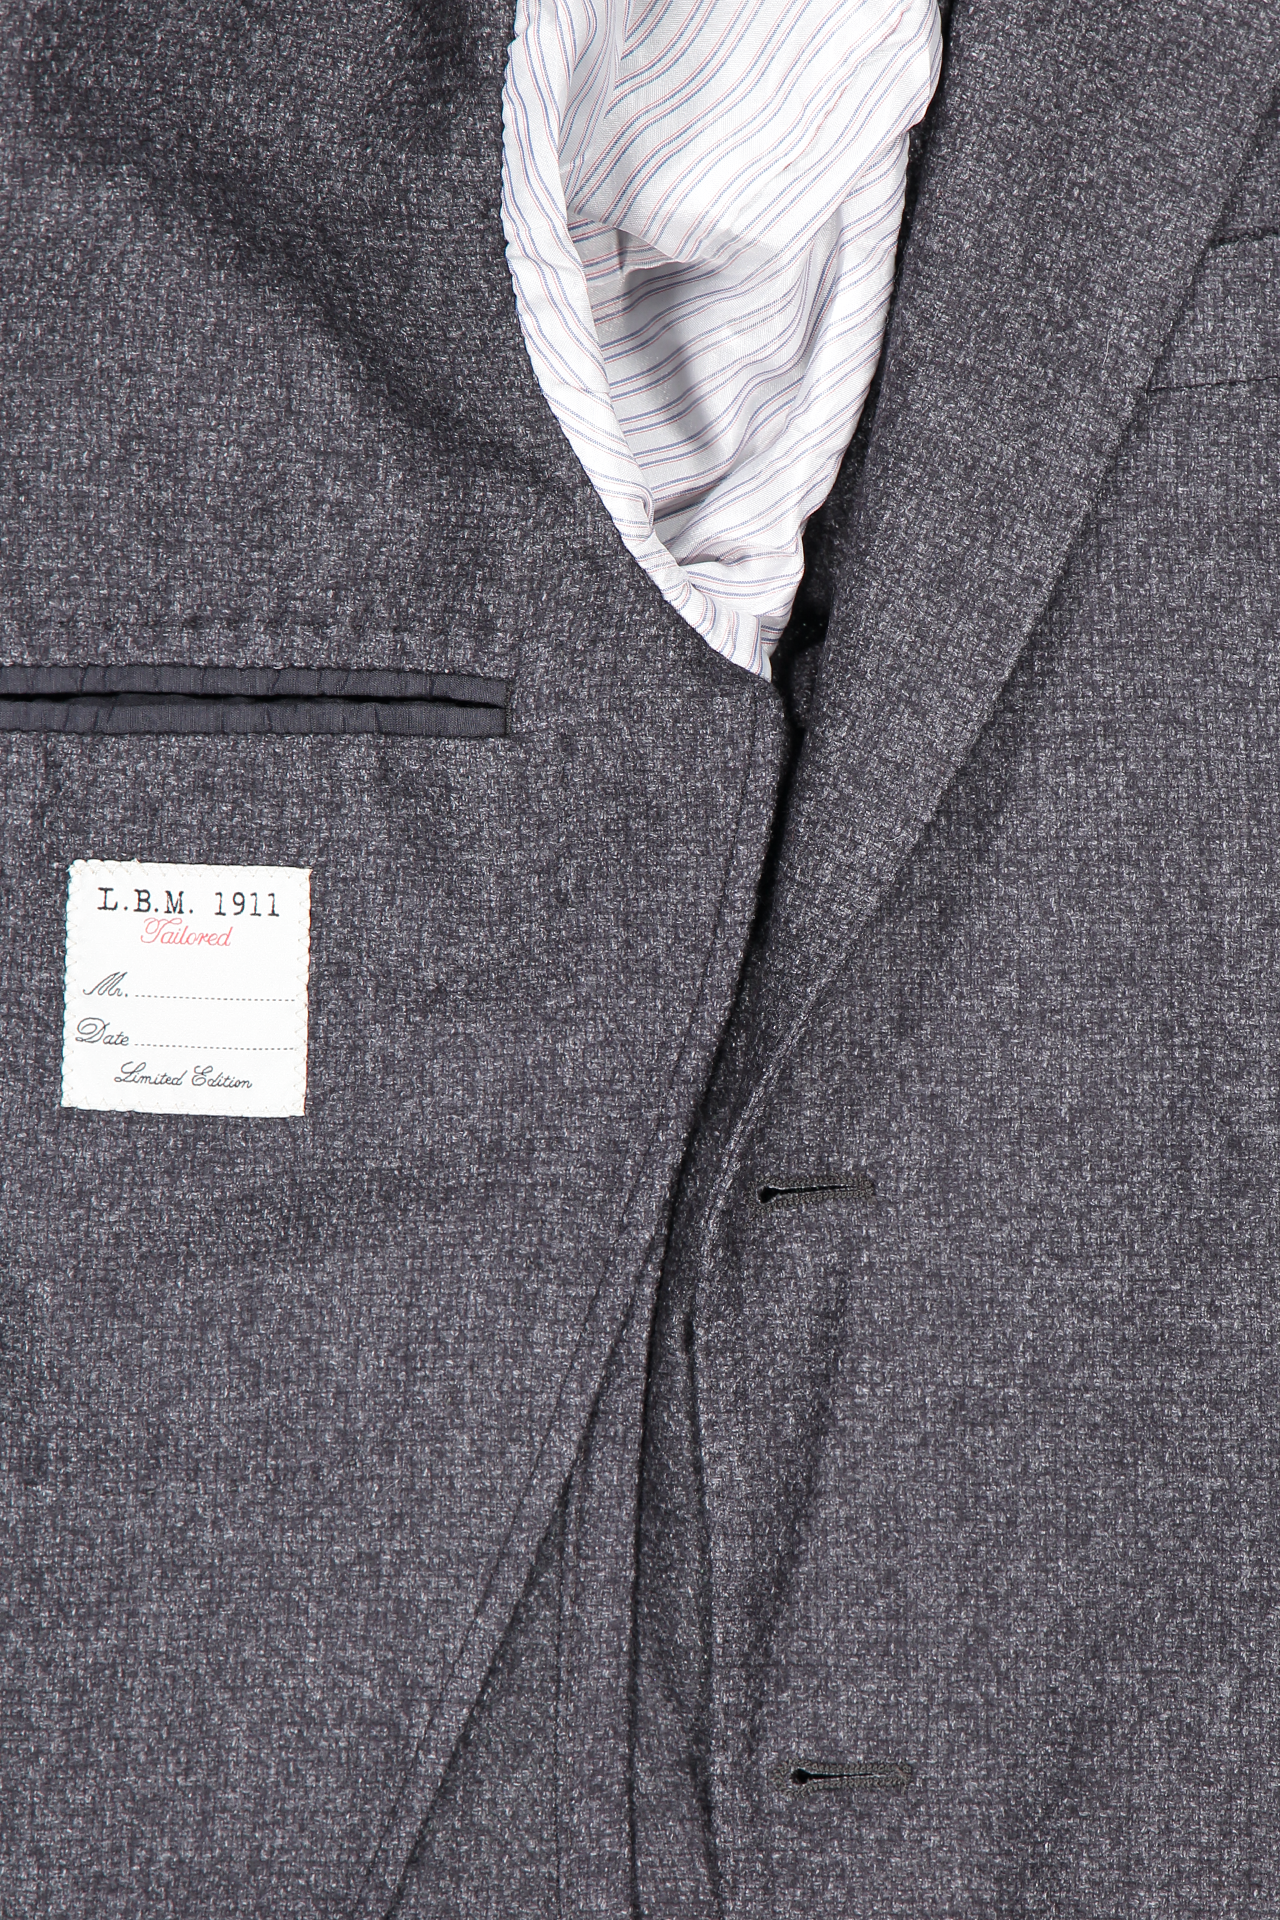 Interior detail image of L.B.M. 1911 Textured Wool Sportcoat